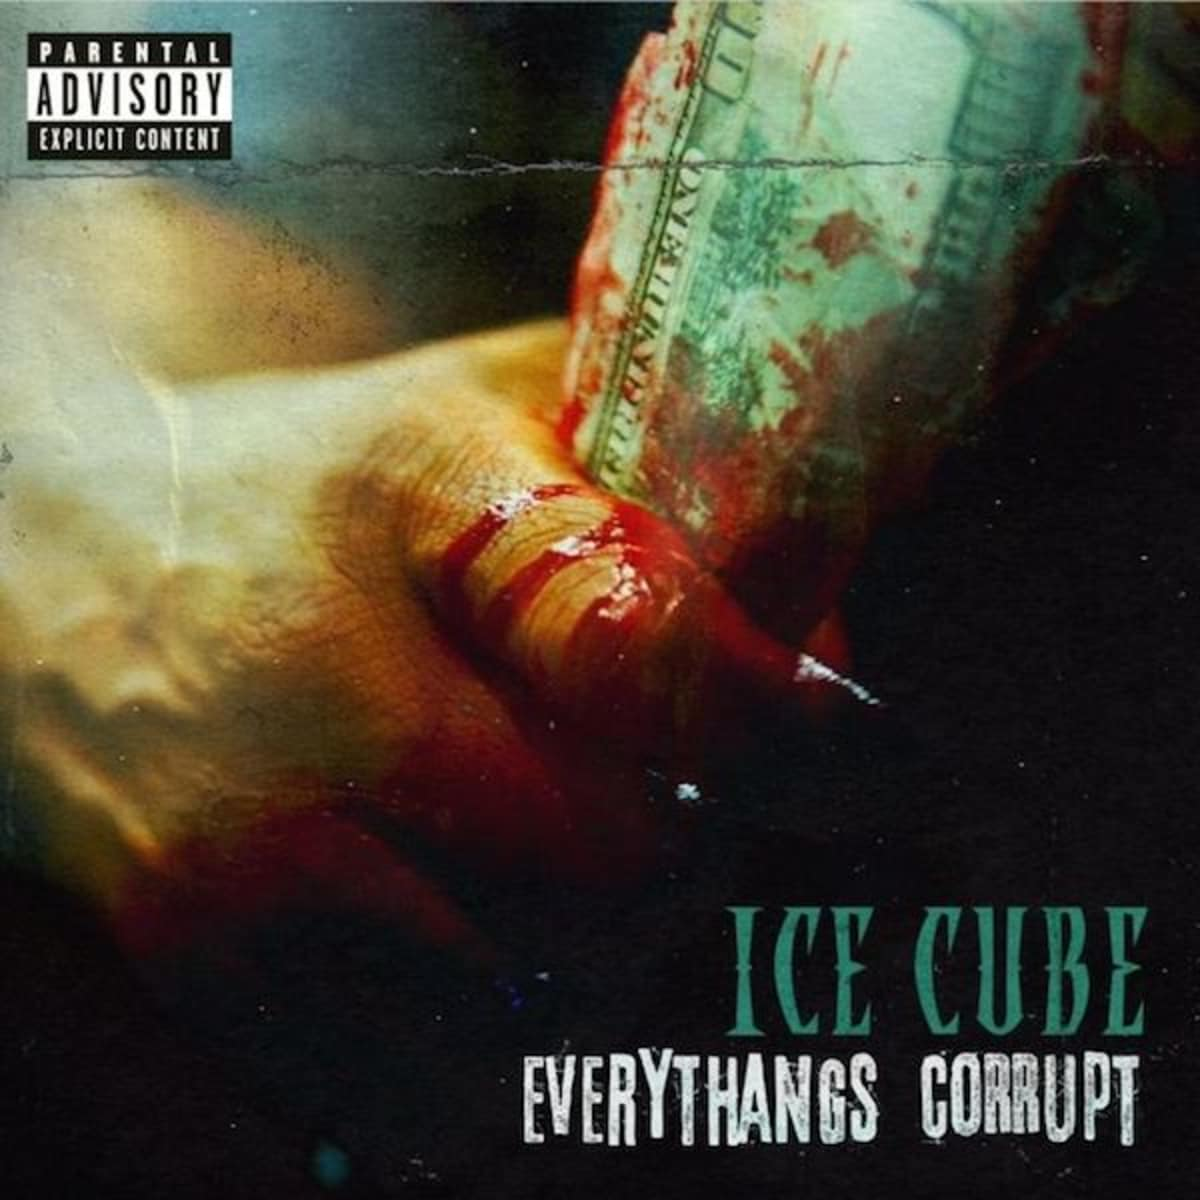 RT @Complex: .@icecube drops 'Everythang's Corrupt' album: https://t.co/EBN3wLGUUj https://t.co/1TmBdtFTIs